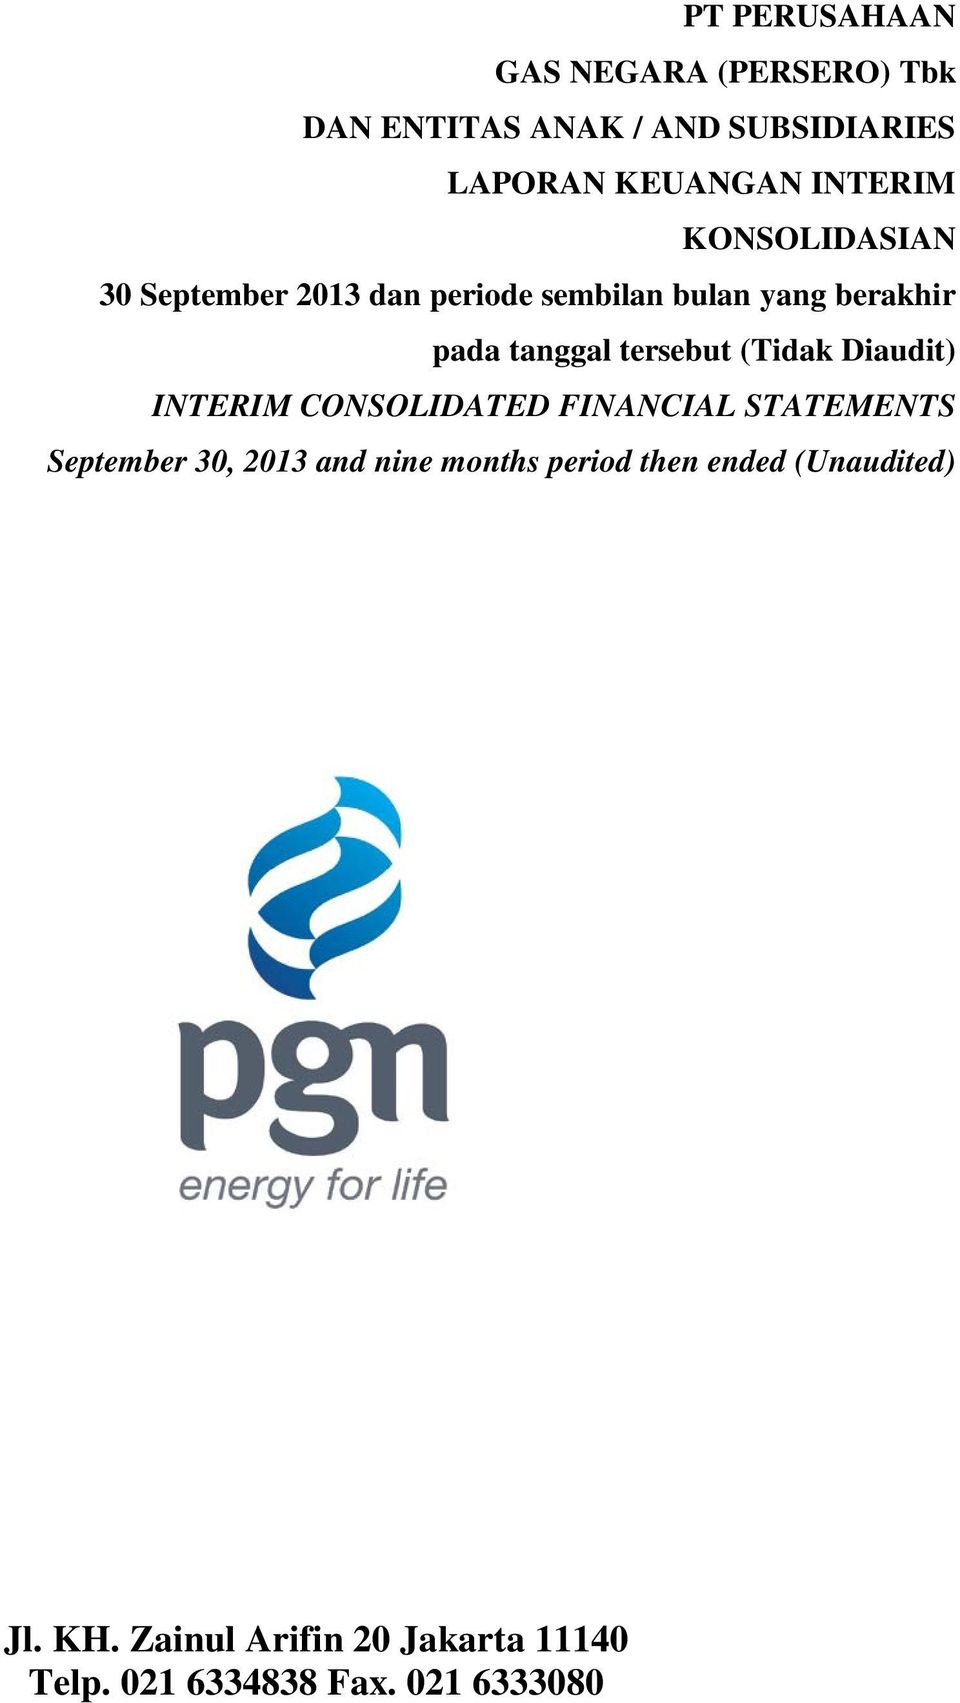 Diaudit) INTERIM CONSOLIDATED FINANCIAL STATEMENTS September 30, 2013 and nine months